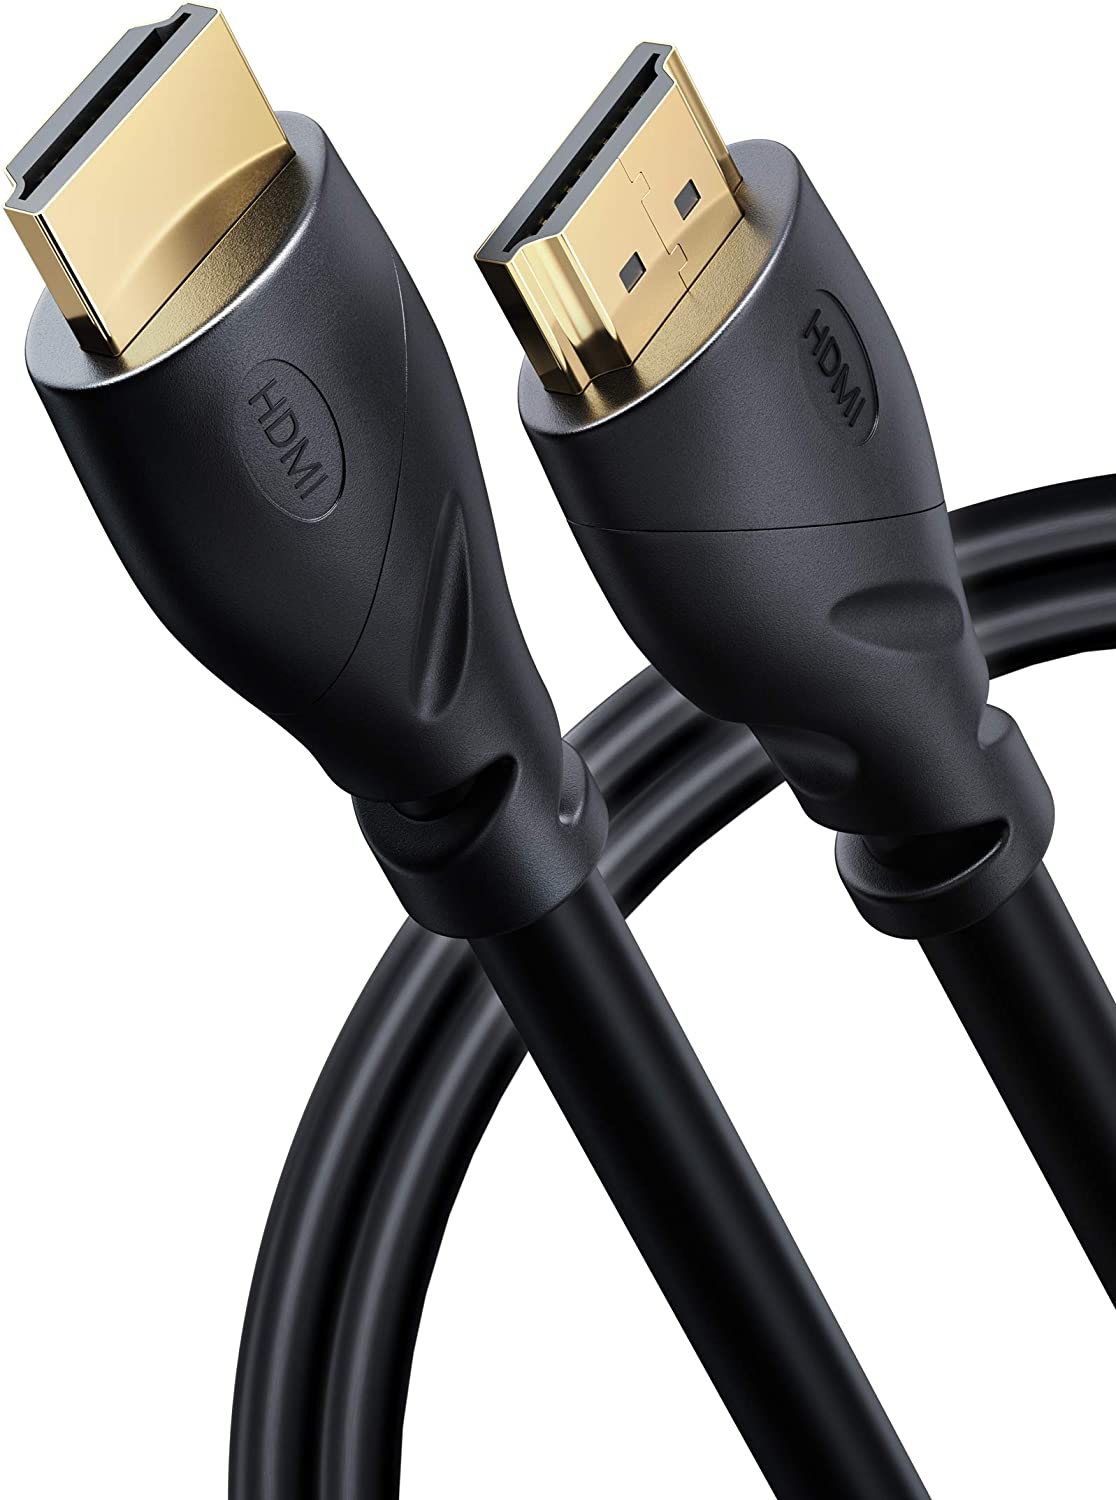 PowerBear 4K HDMI Cable 6 ft   High Speed, Rubber & Gold Connectors, 4K @ 60Hz, Ultra HD, 2K, 1080P & ARC Compatible for Laptop, Monitor, PS5, PS4, Xbox One, Fire TV, Apple TV & More